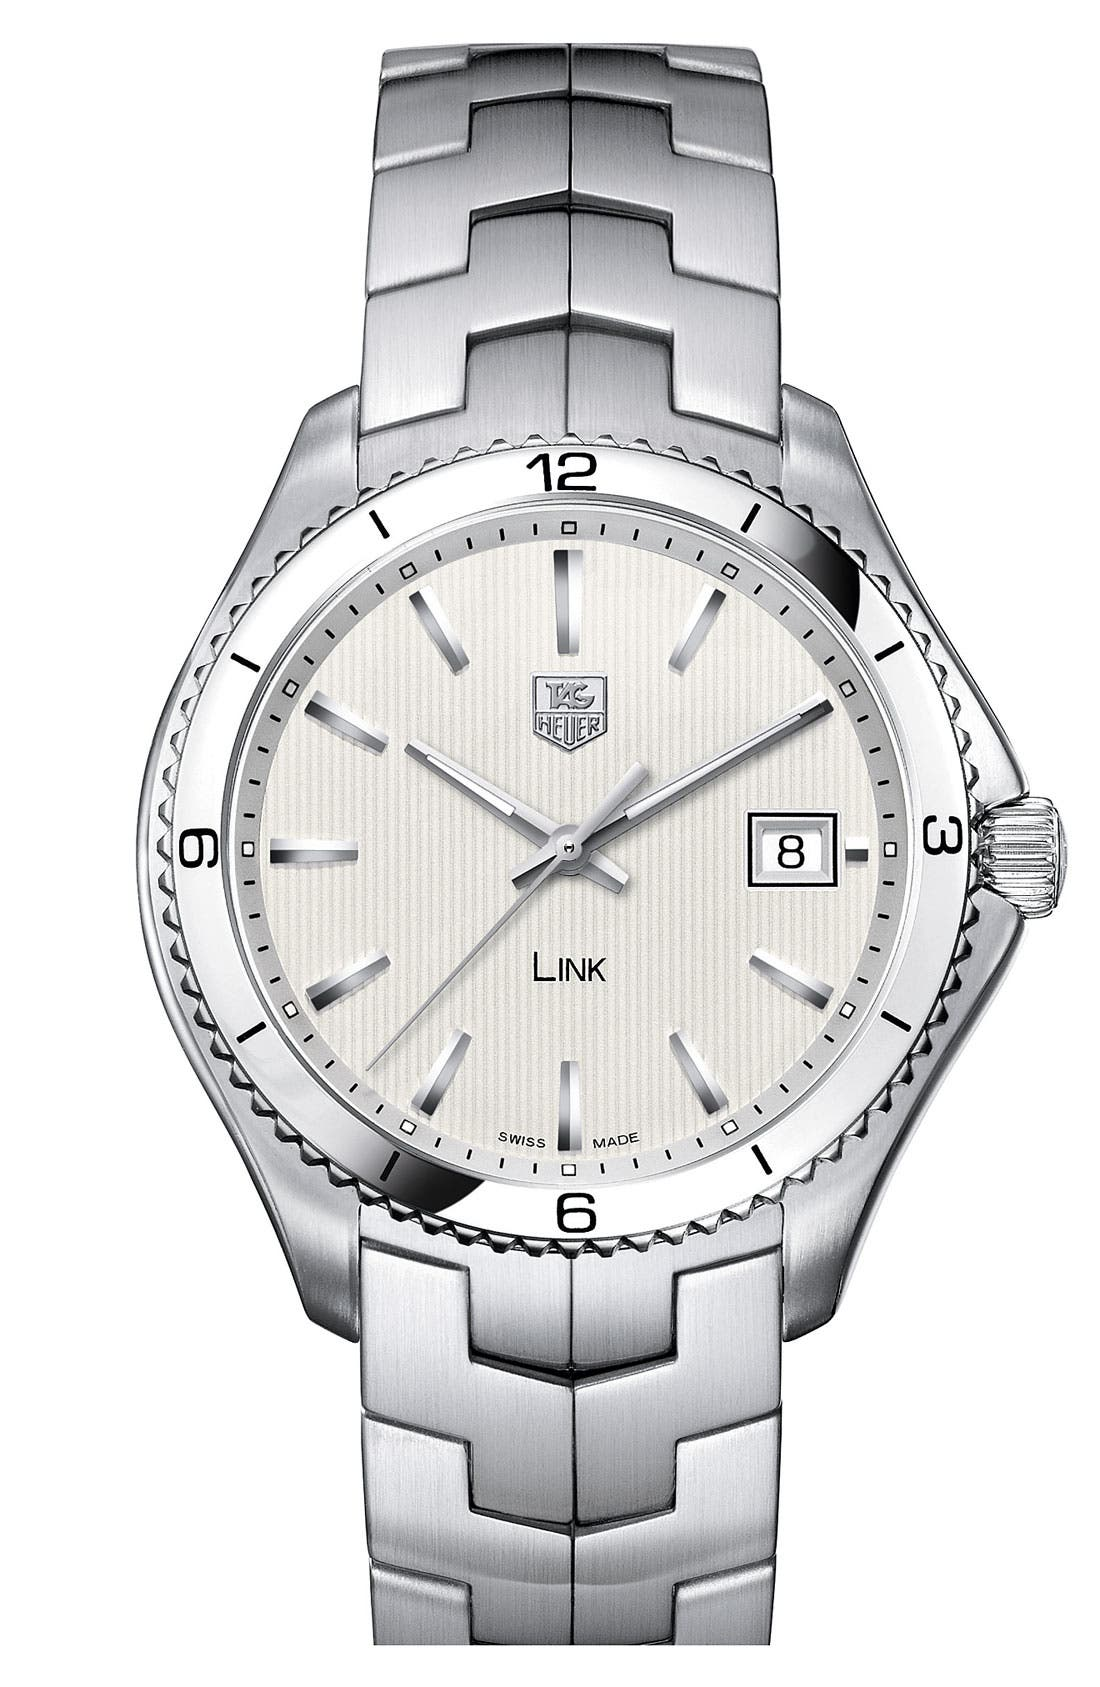 Main Image - TAG Heuer 'Link' Stainless Steel Watch